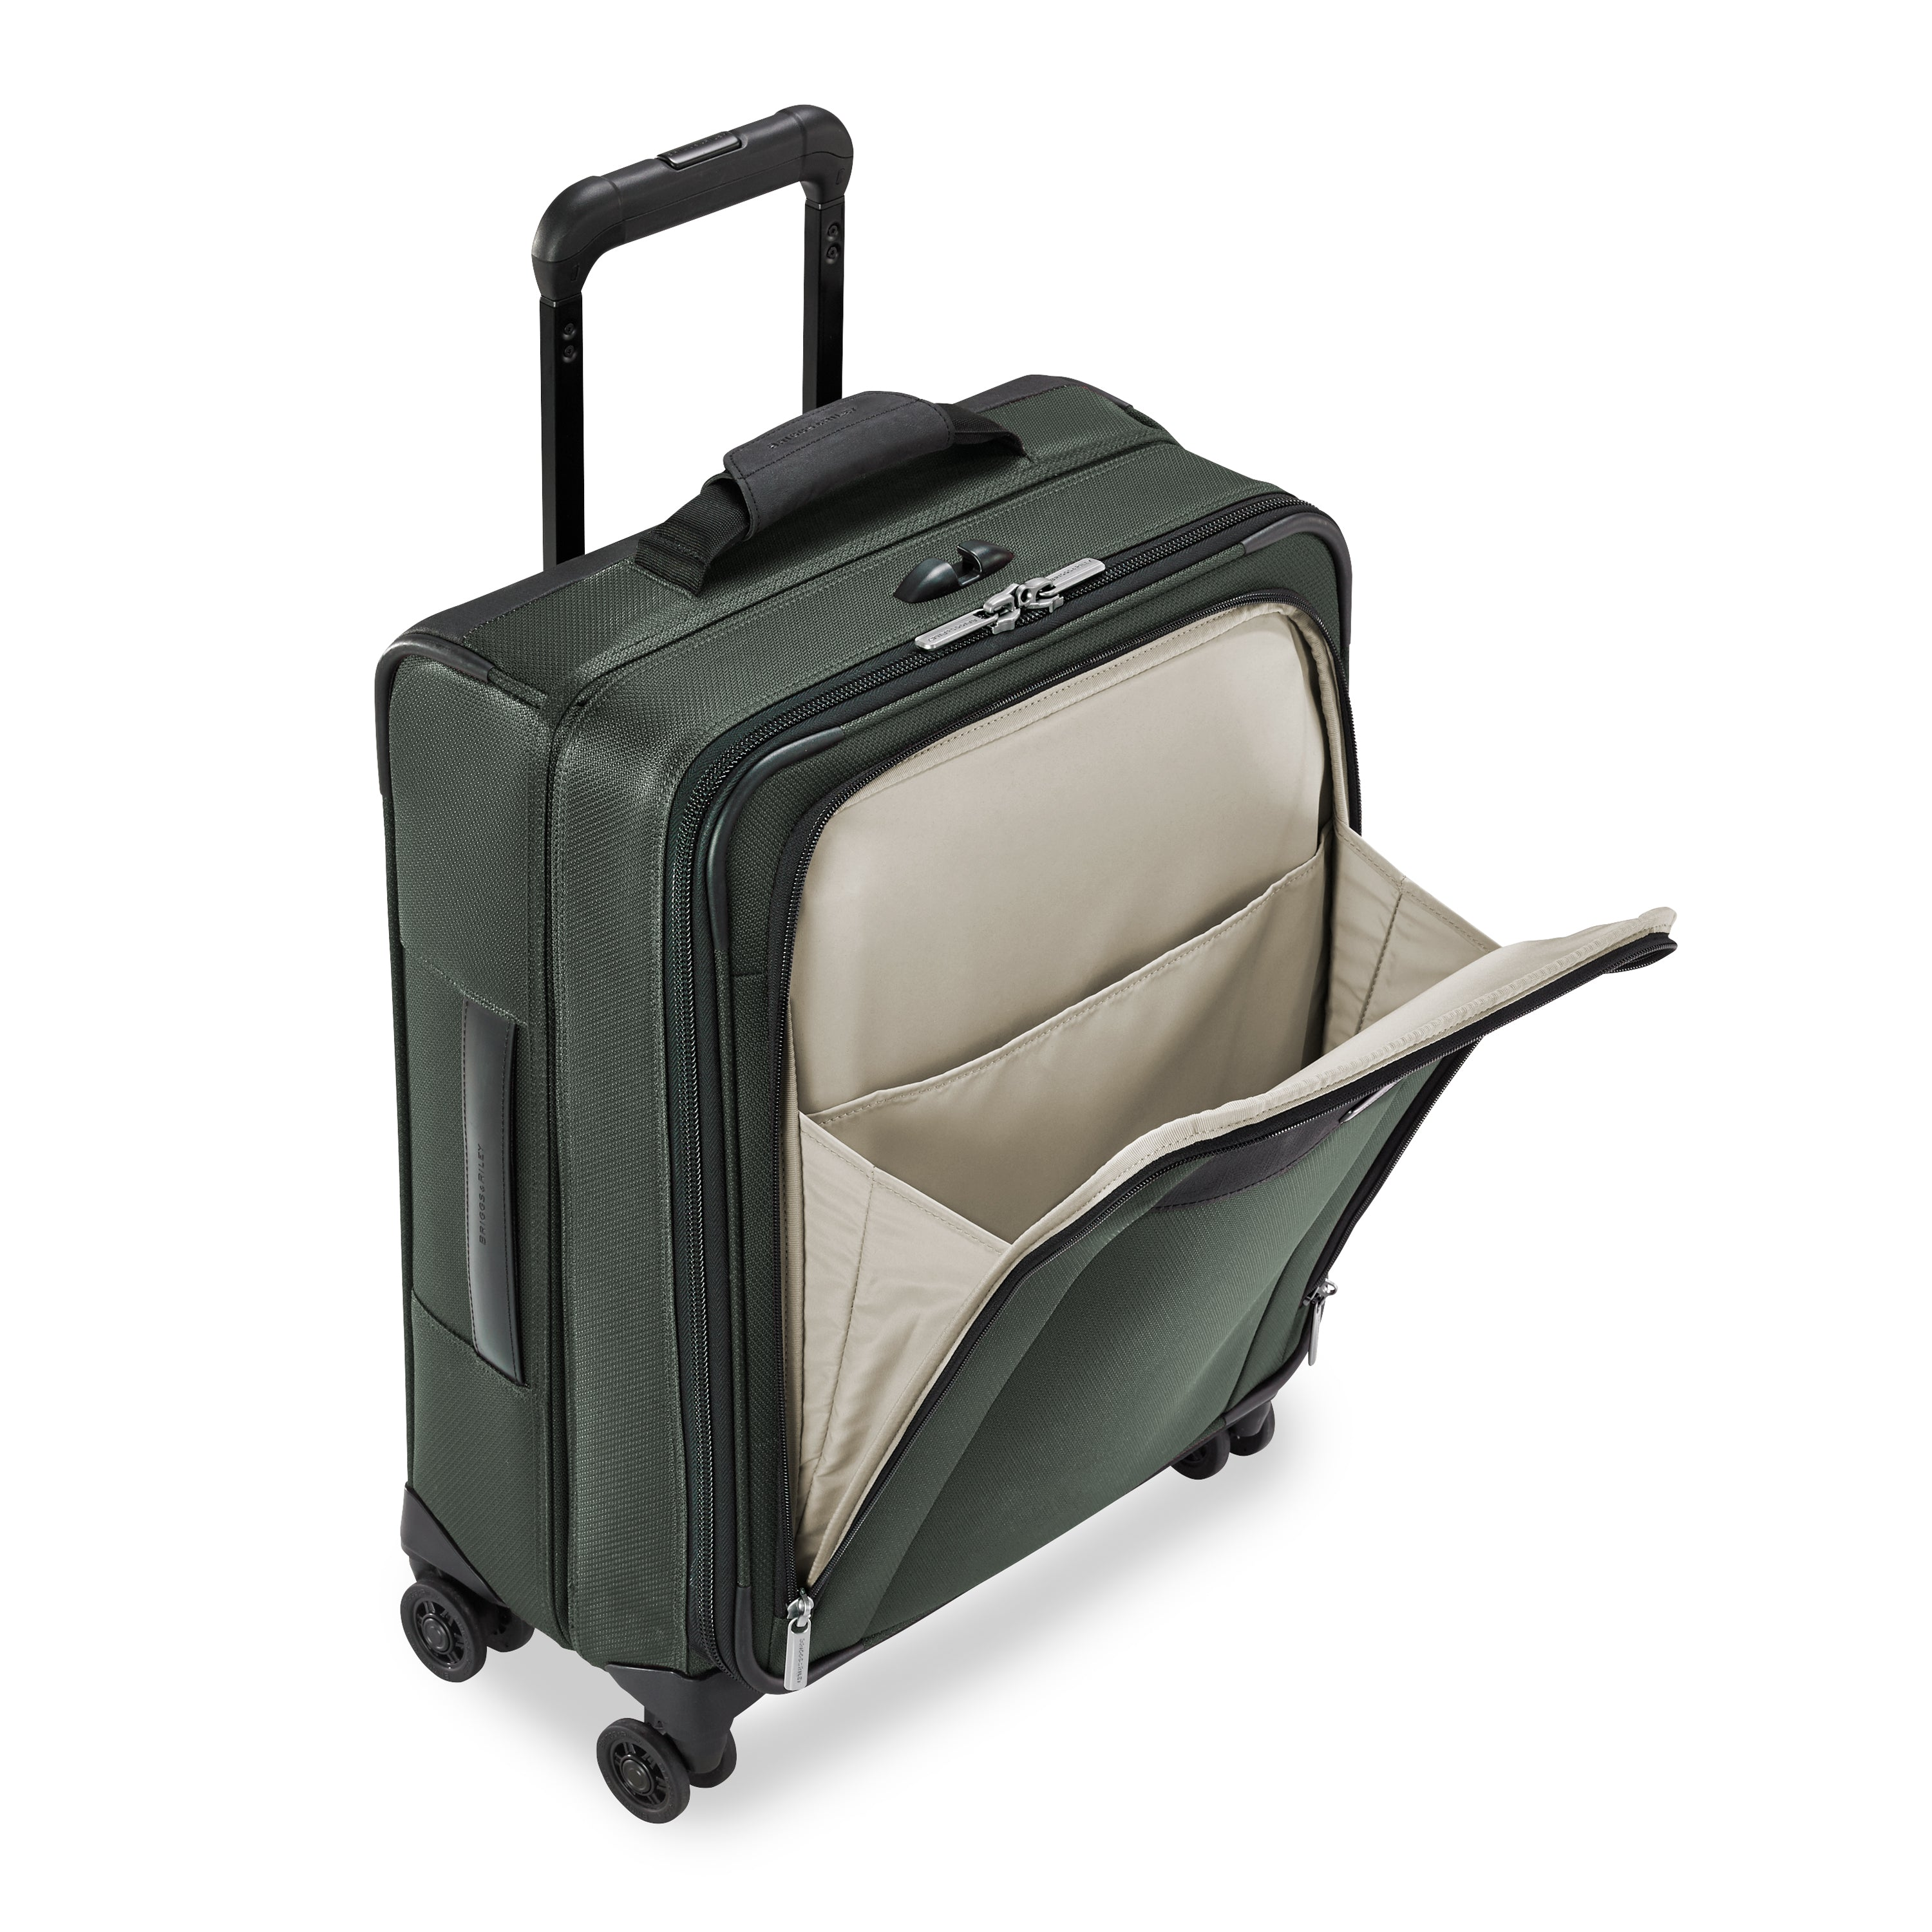 Briggs & Riley Transcend Wide Carry-On Expandable Spinner - Rainforest | MEGO